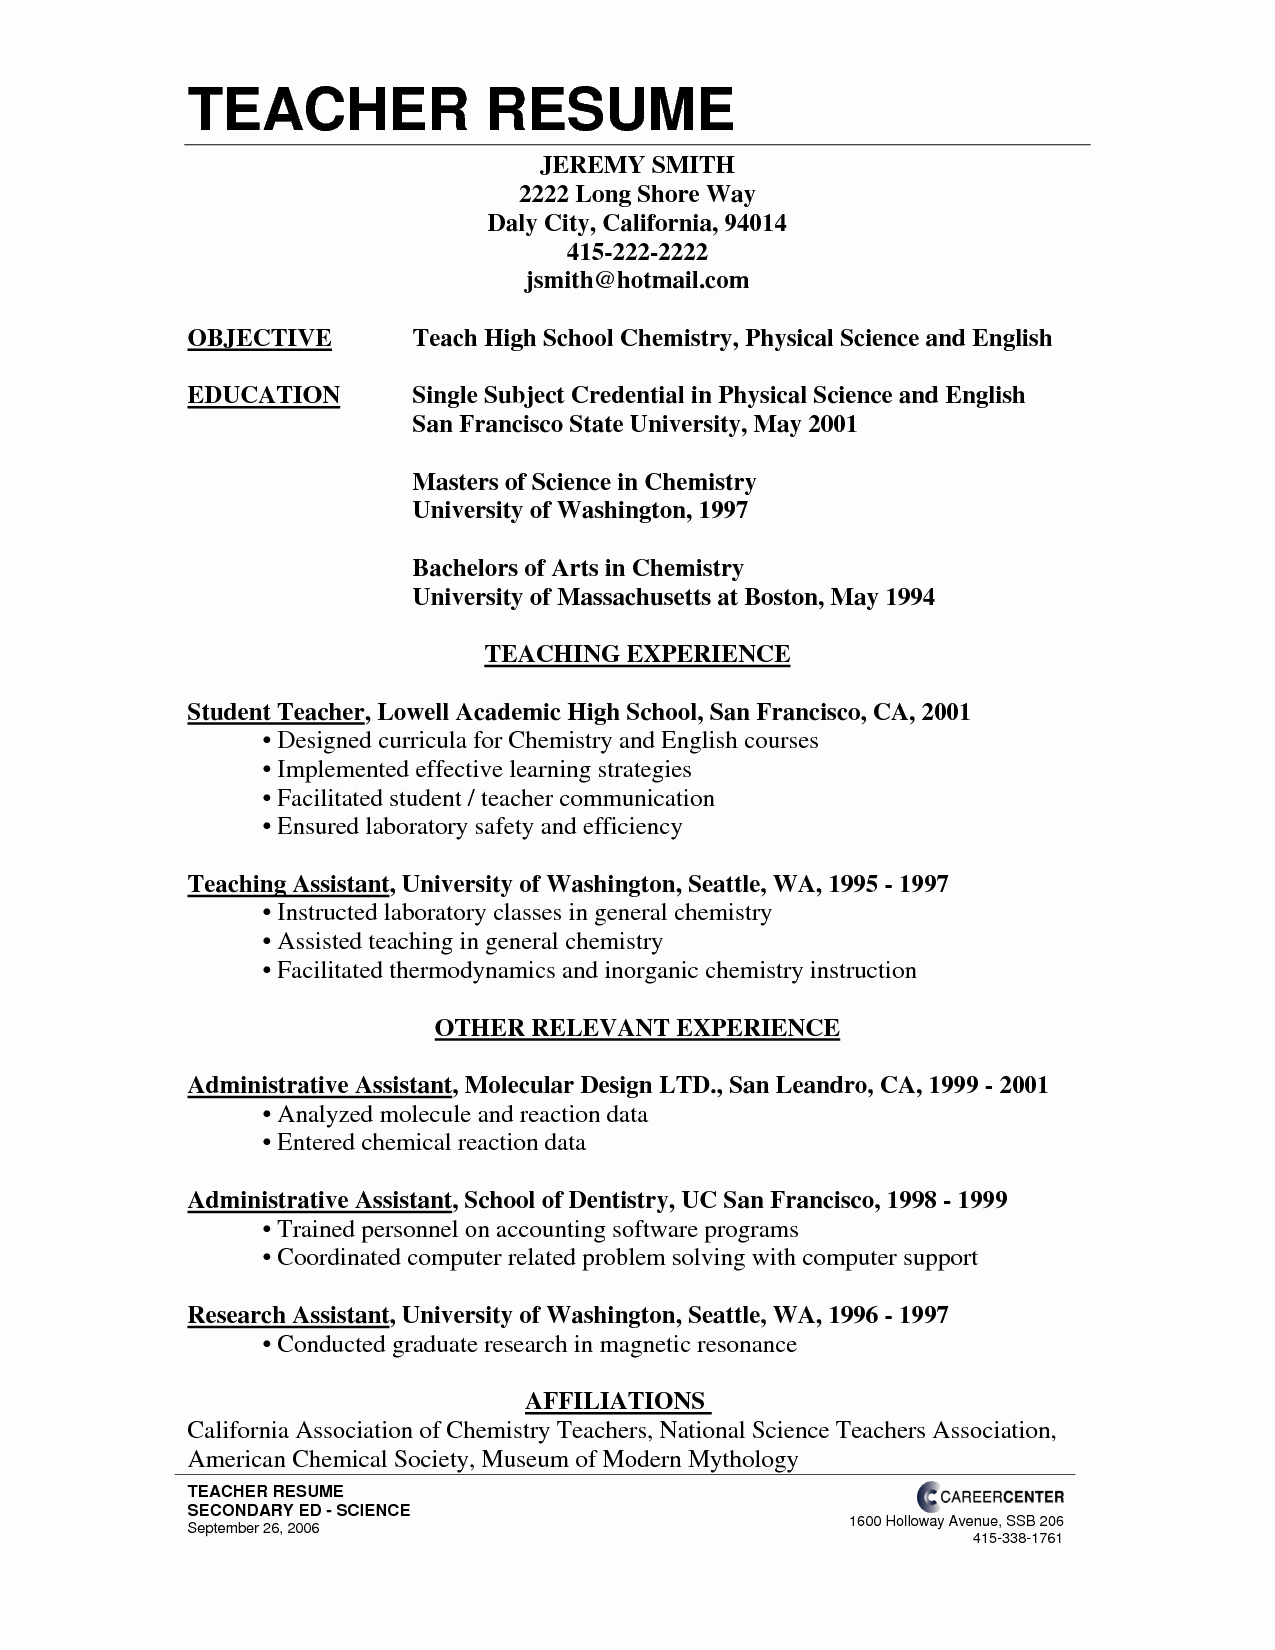 Resume Template for Teachers Fresh Pin by Teachers Reasumes On Teachers Resumes